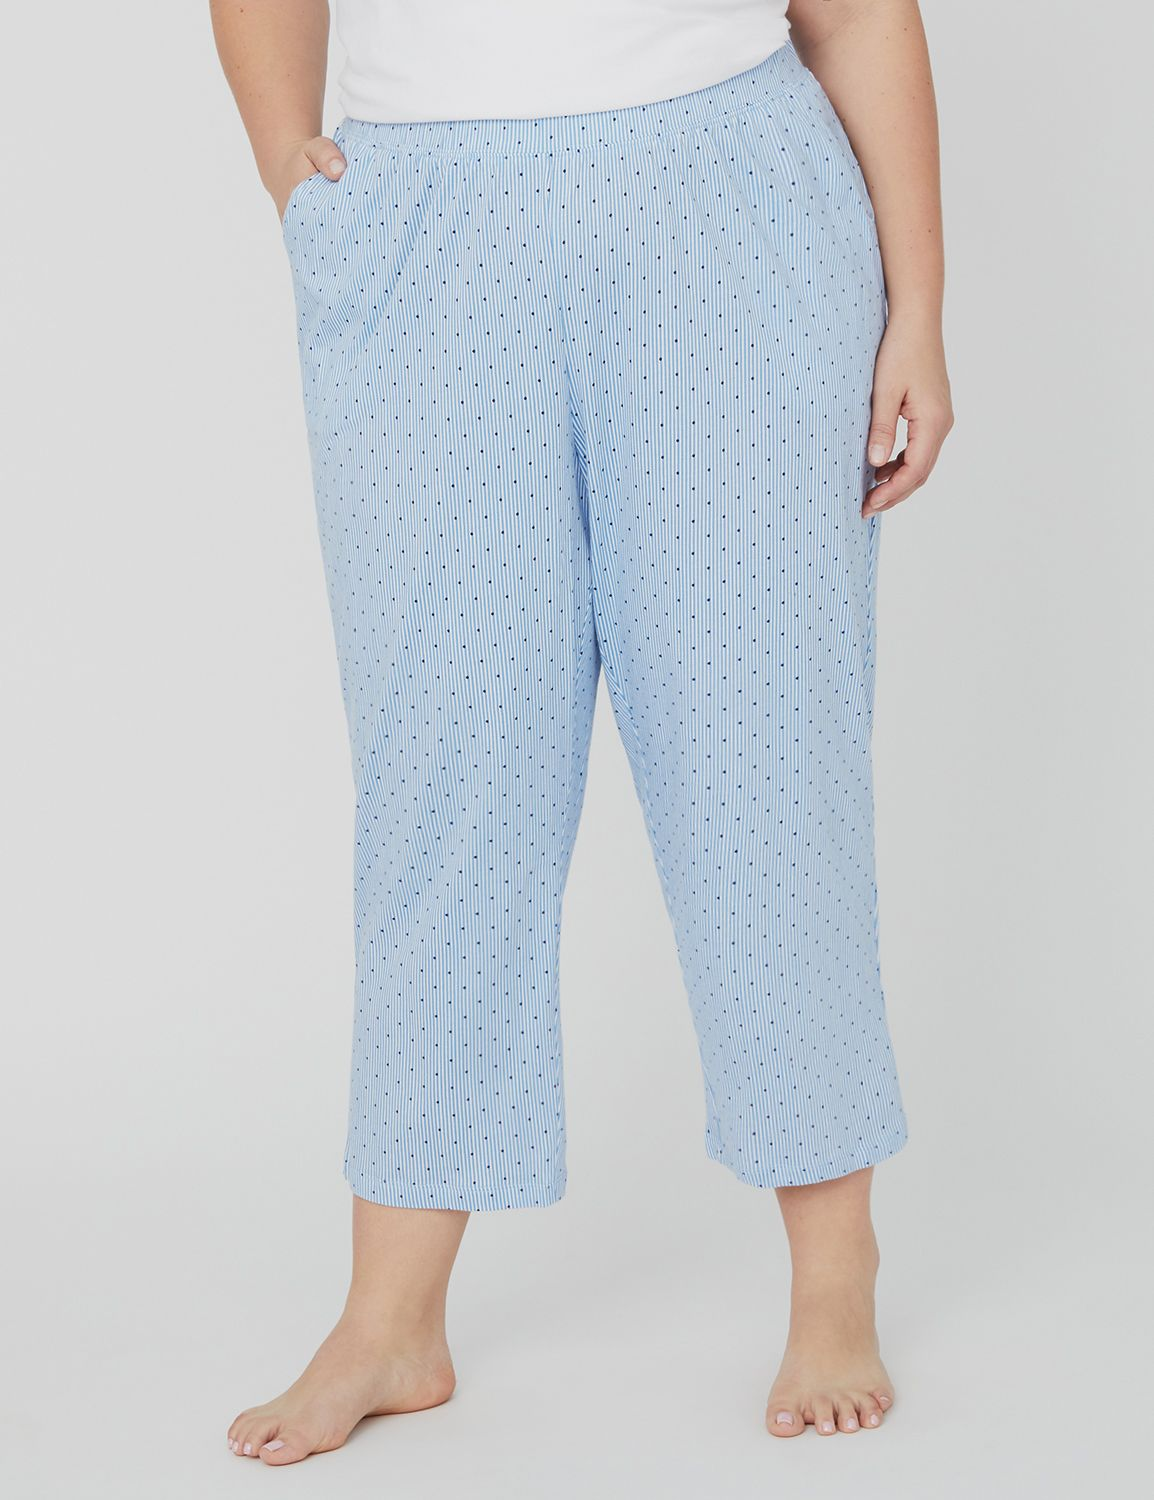 Prints Charming Sleep Capri 1088561 Printed cotton capri -21